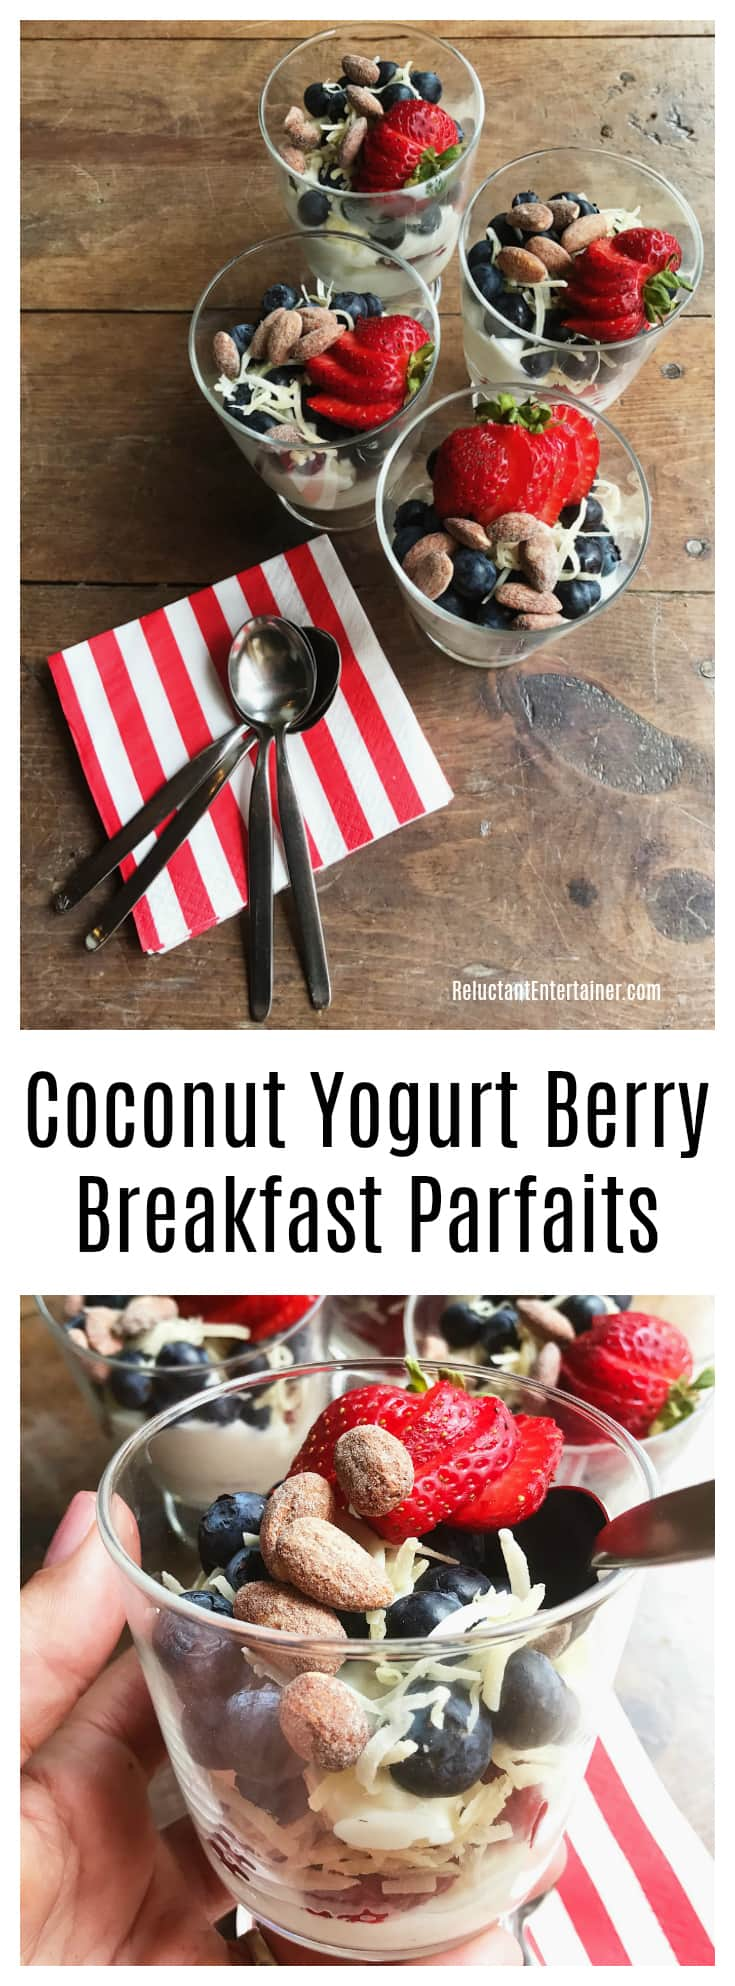 Coconut Yogurt Berry Breakfast Parfaits